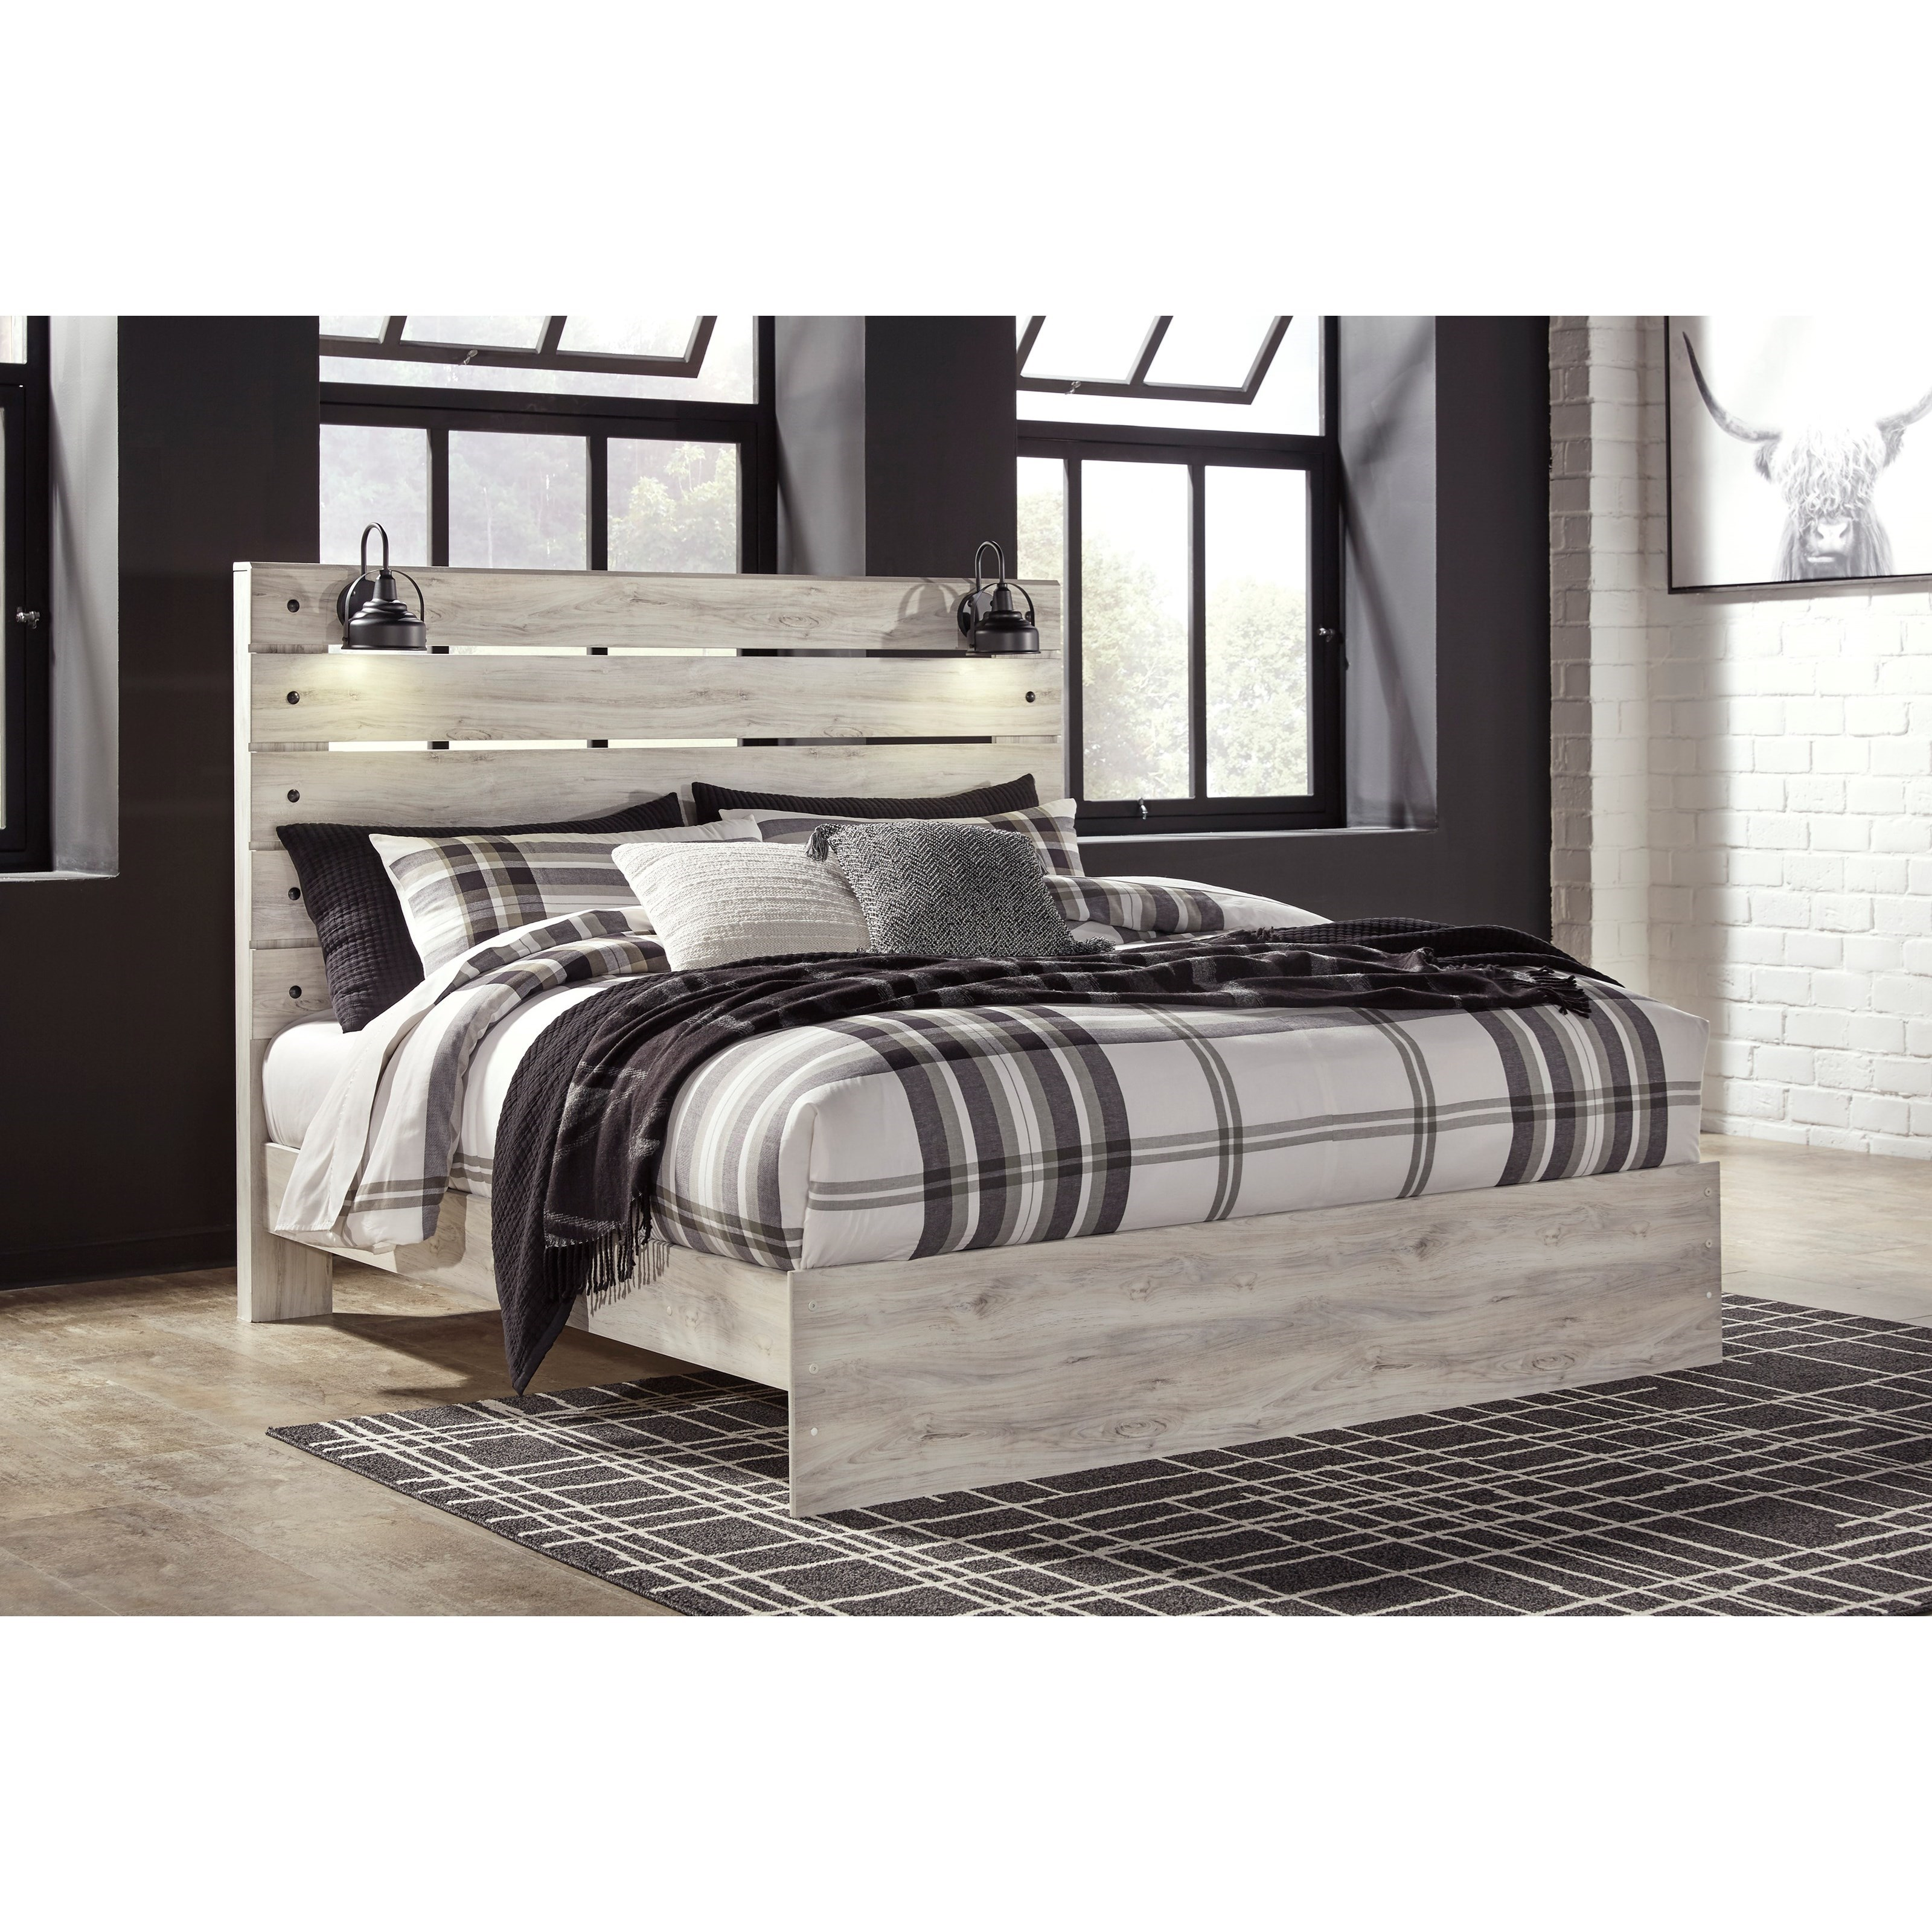 Signature Design By Ashley Cambeck Rustic King Panel Bed